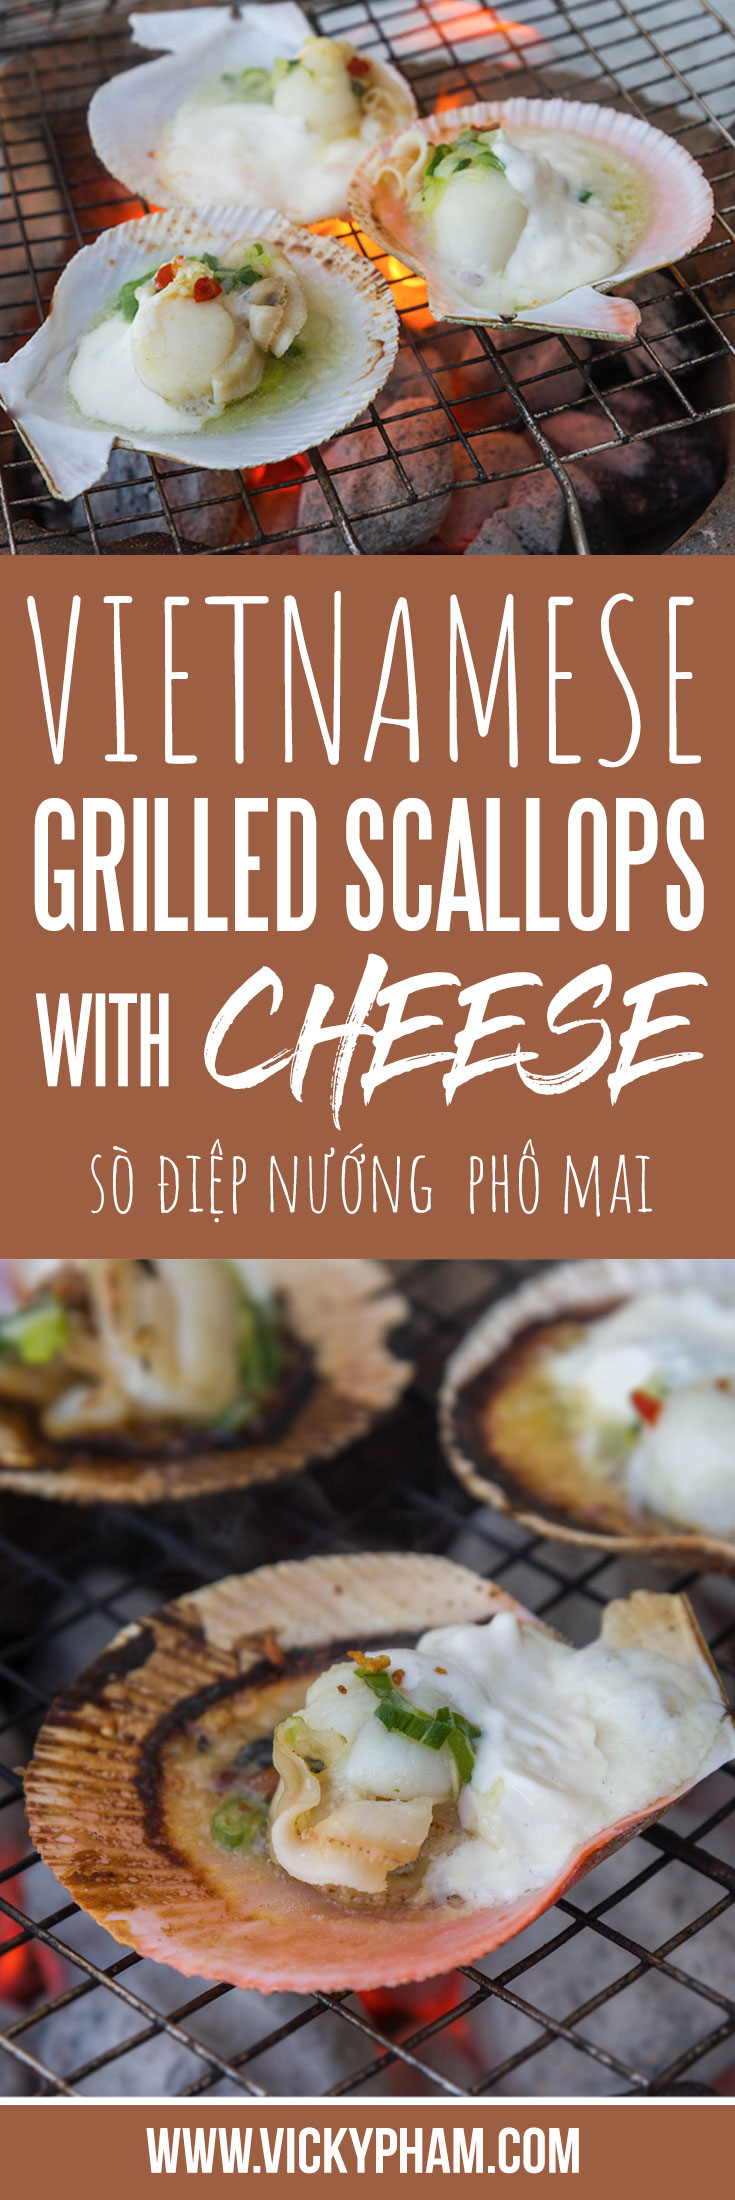 Vietnamese Grilled Scallops with Cheese (So Diep Nuong Pho Mai)